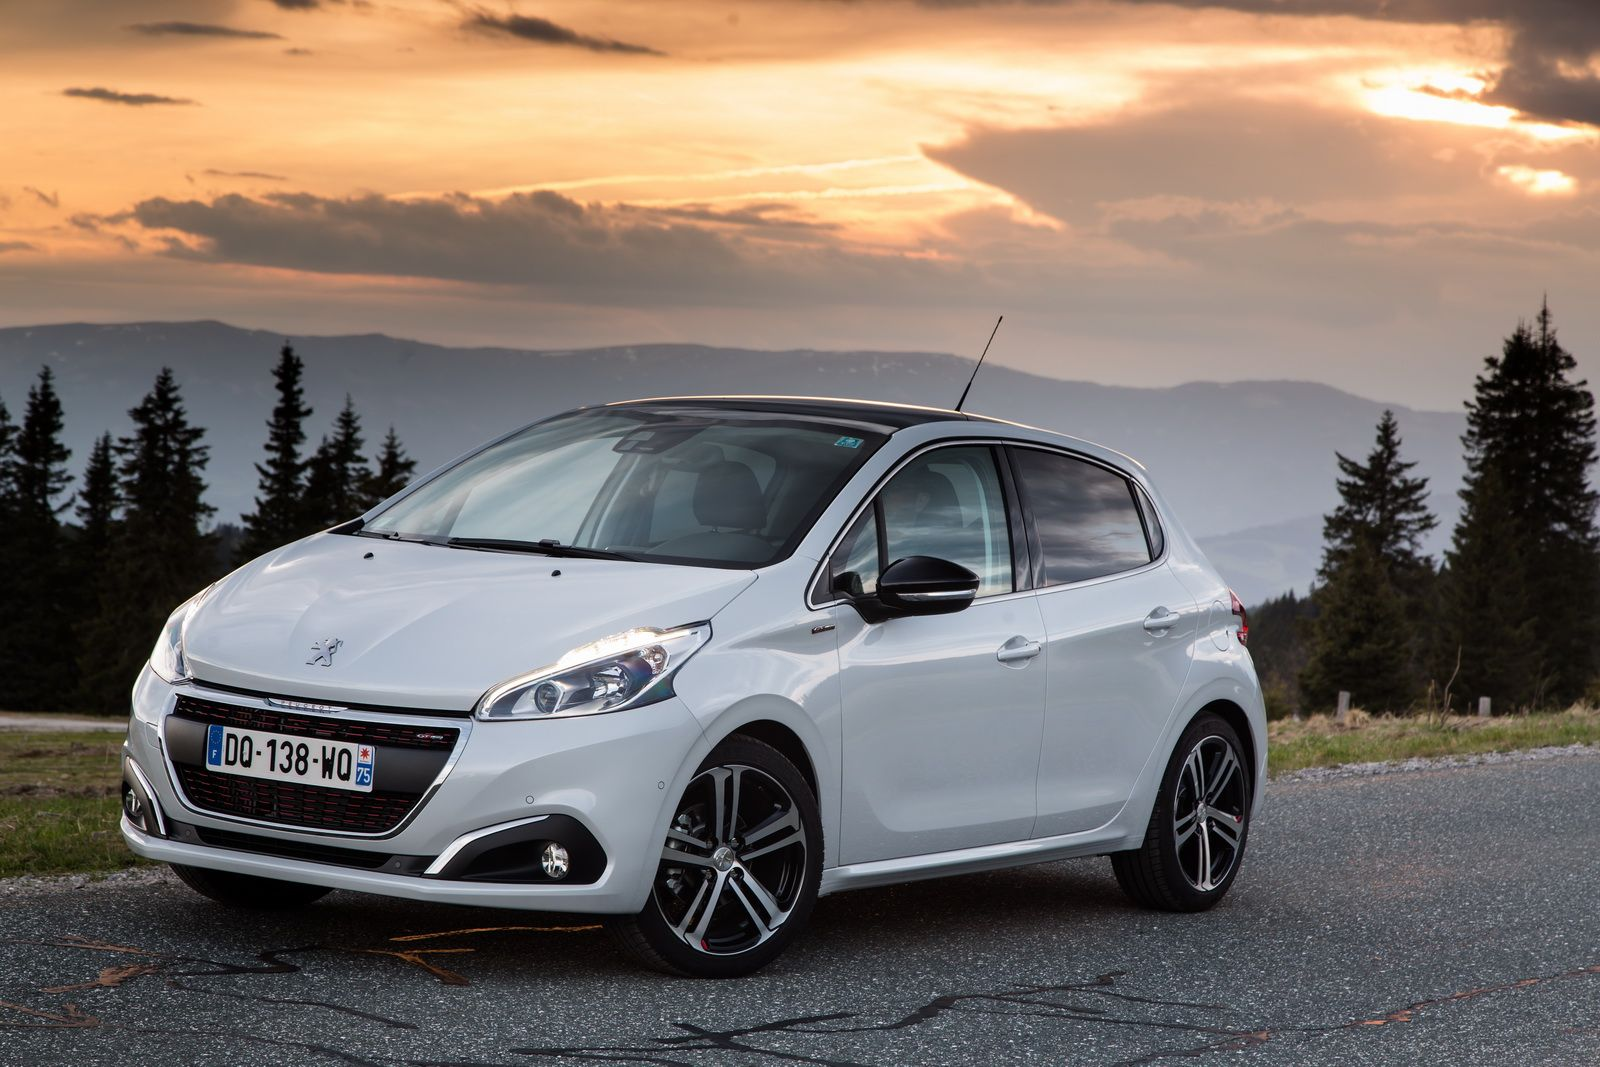 Facelifted Peugeot 208 Reaches Uk Shores Priced From 11 695 Carscoops Peugeot Car Bmw Series